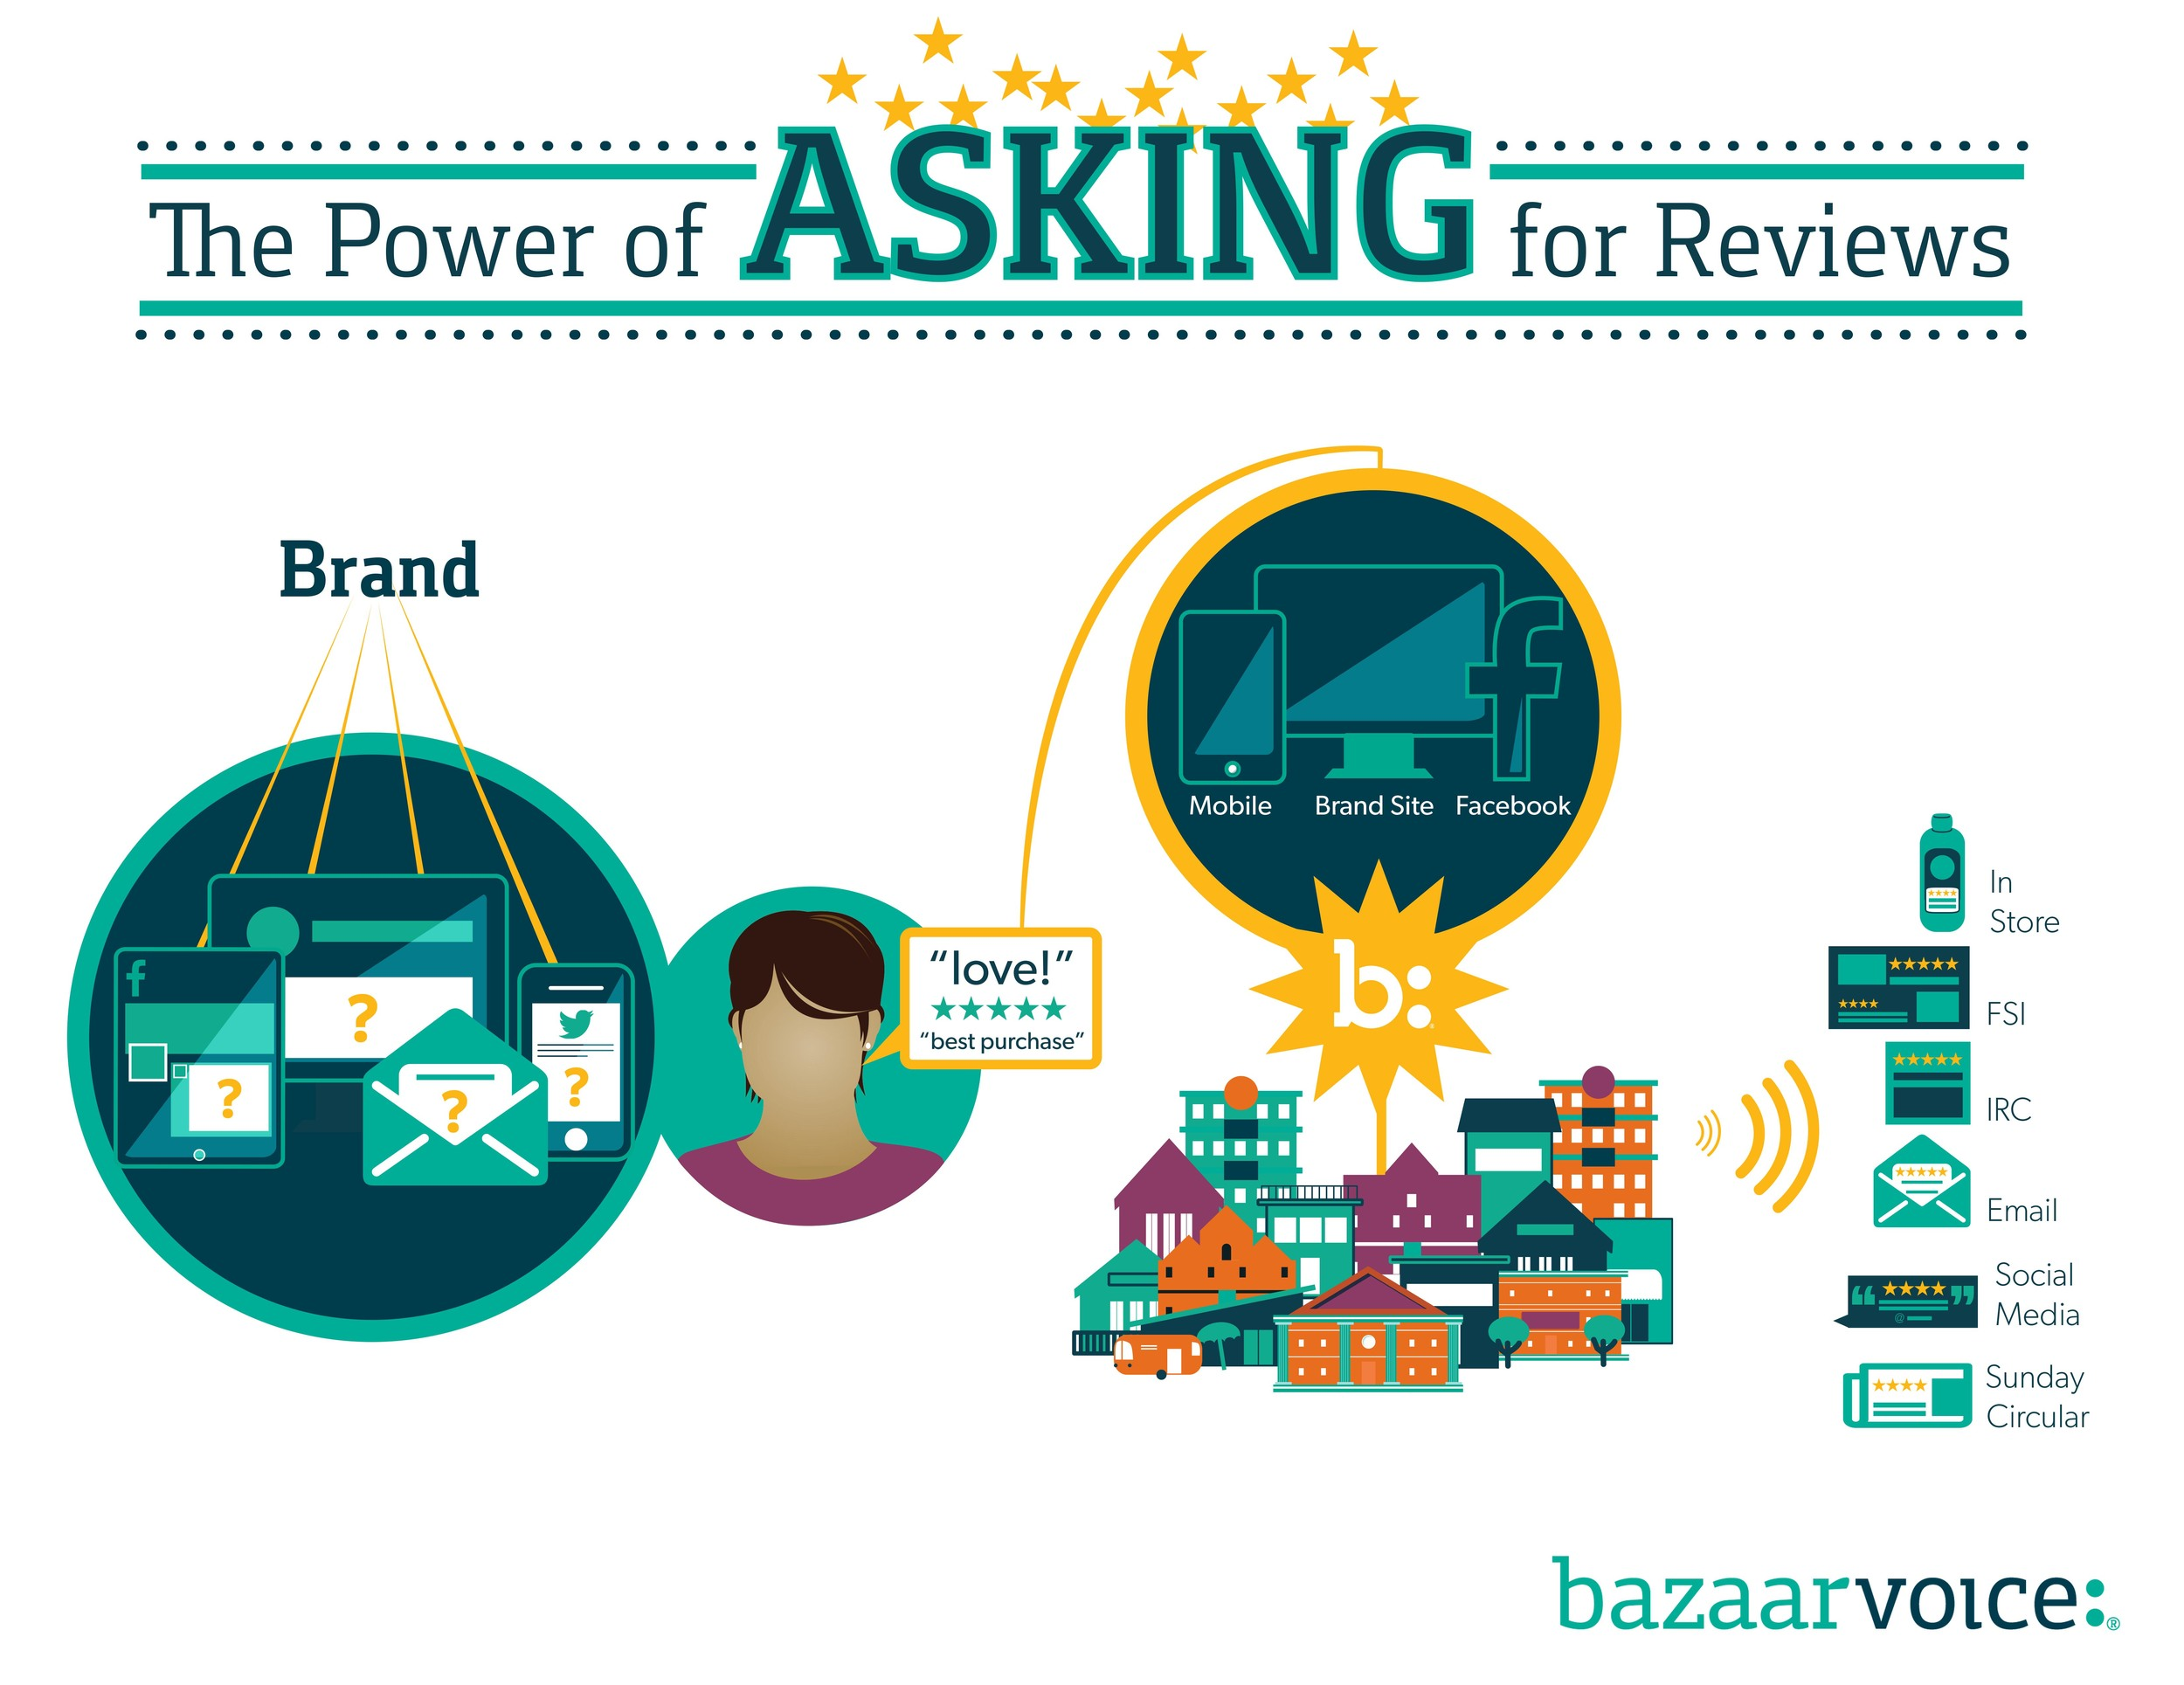 Many businesses are skeptical of the impact that reviews can have on generating sales and brand loyalty. I created this graphic to show how easy it is for a business to gain far-reaching impact from Consumer Generated Content. All a business has to do is ask for feedback, and the Bazaarvoice network collects the best content to syndicate across the business' advertising and marketing efforts.